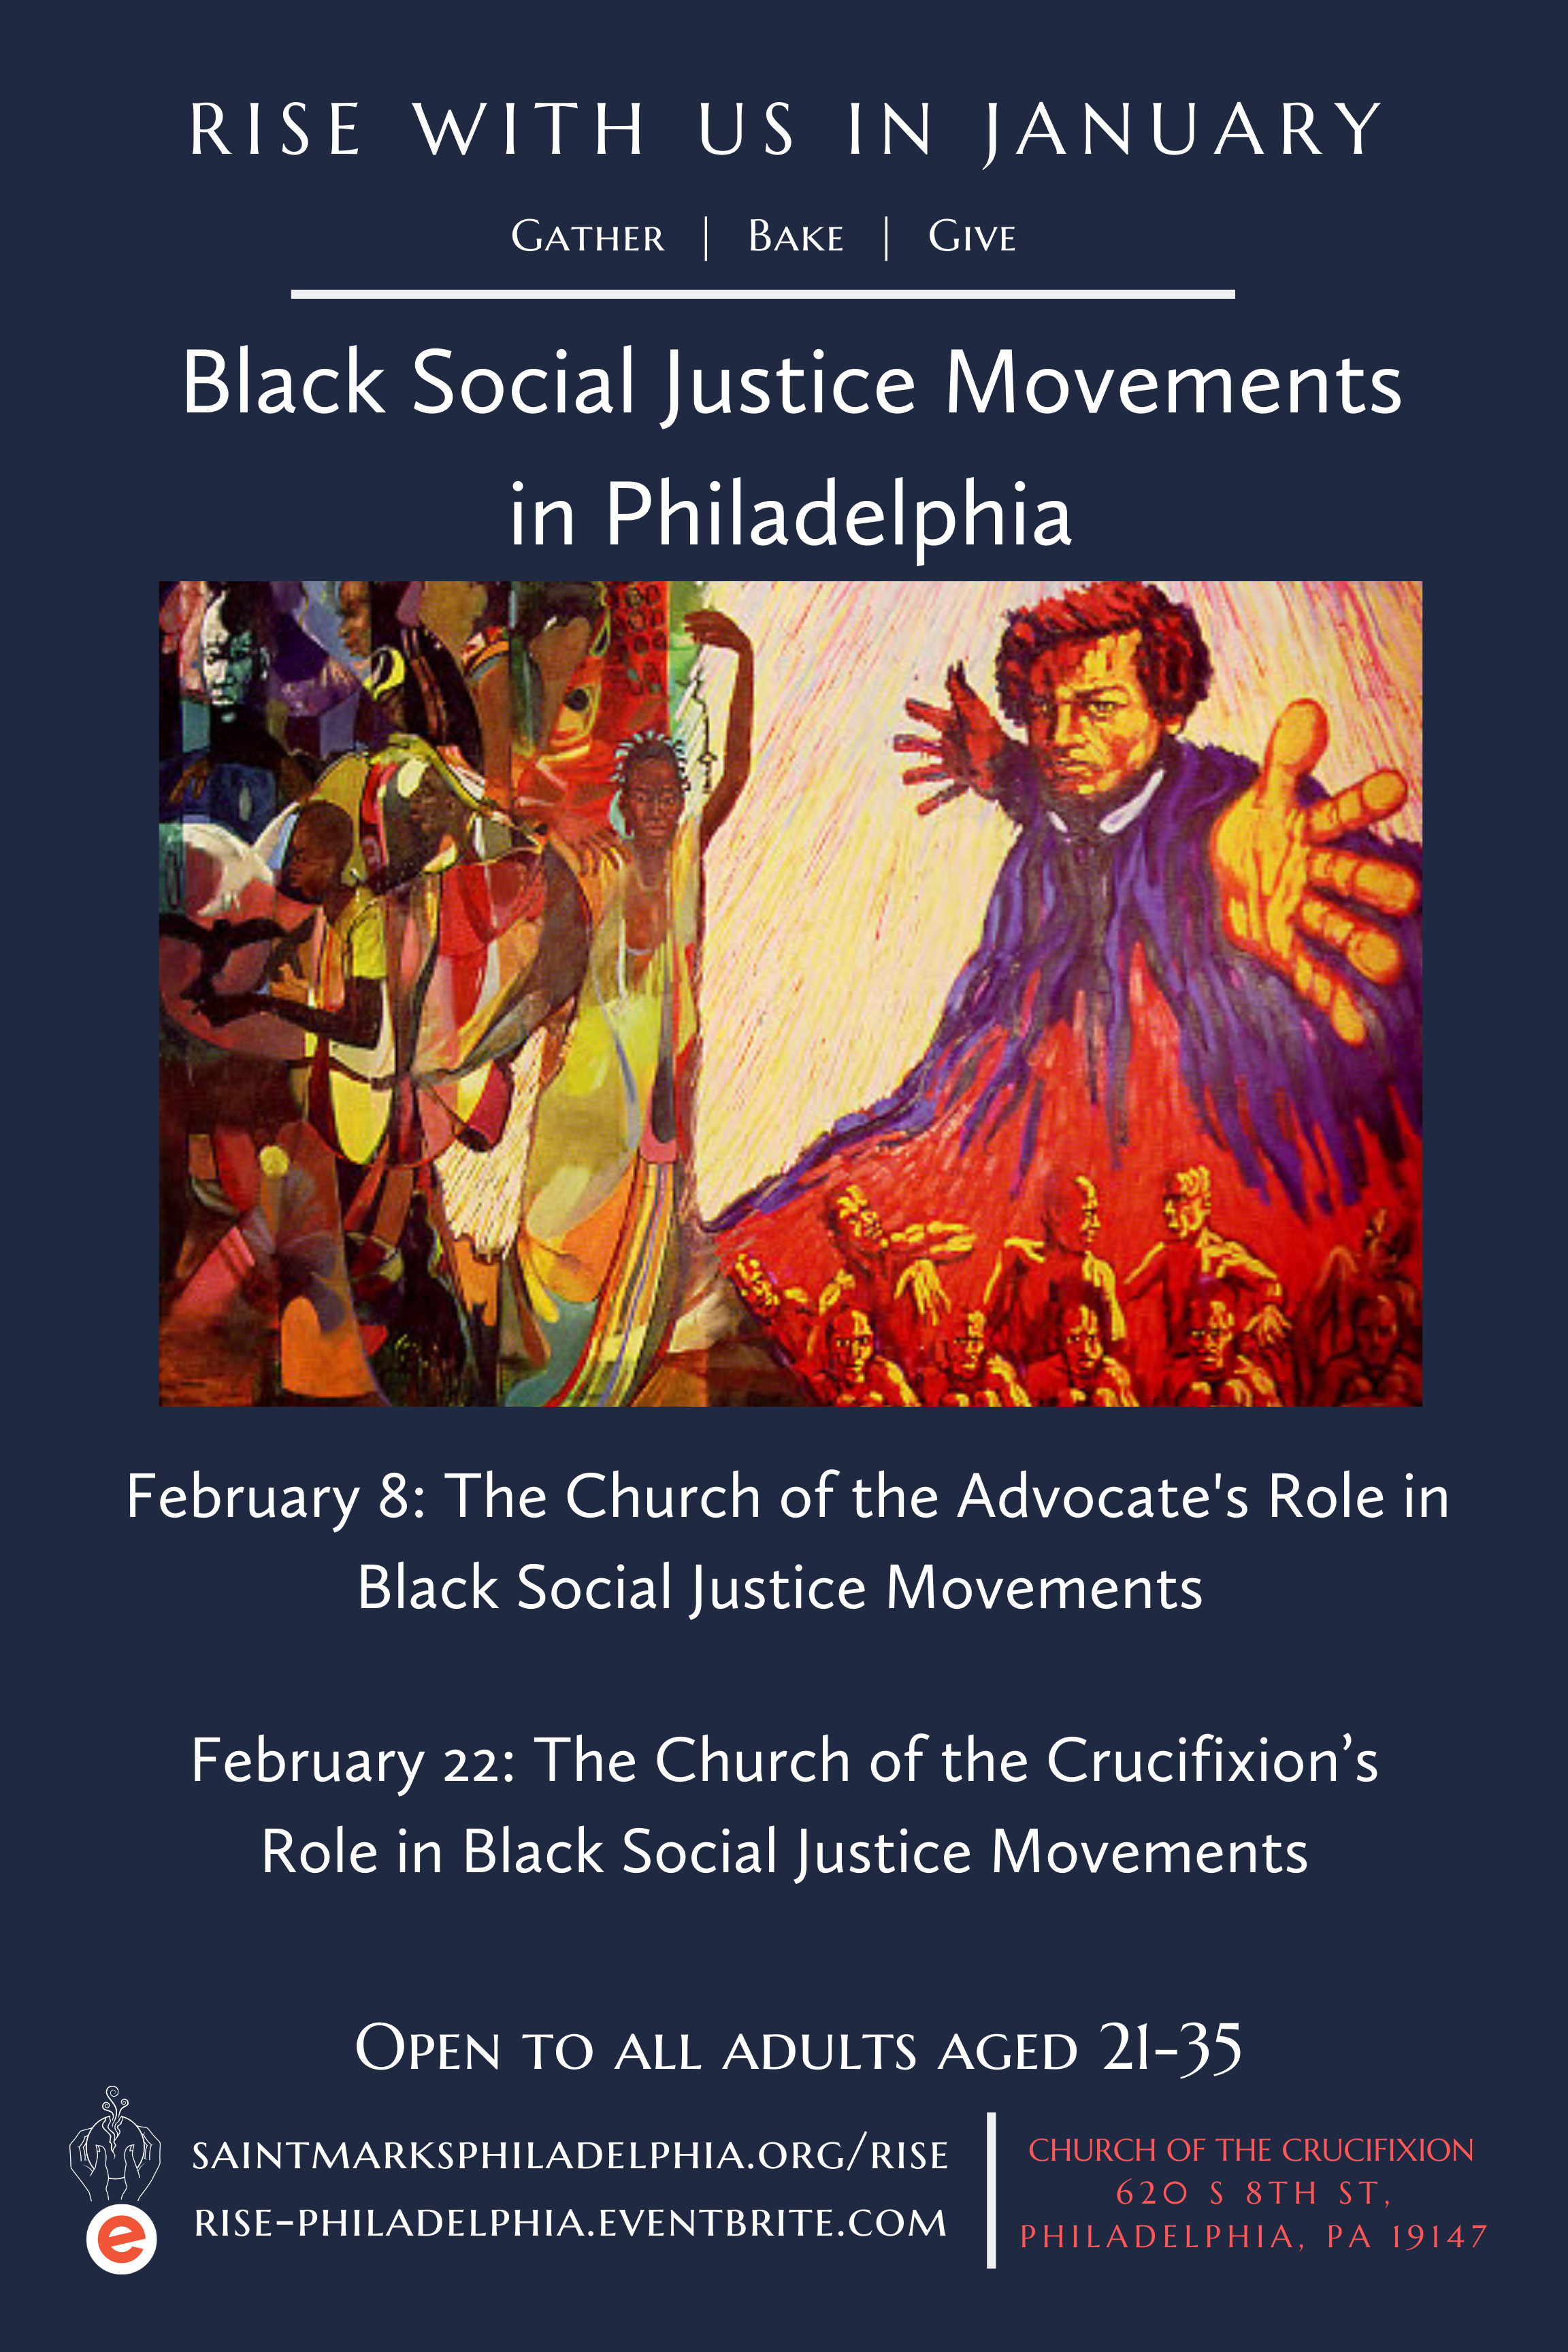 Rising Up from Oppression: Black Social Justice Movements in Philadelphia